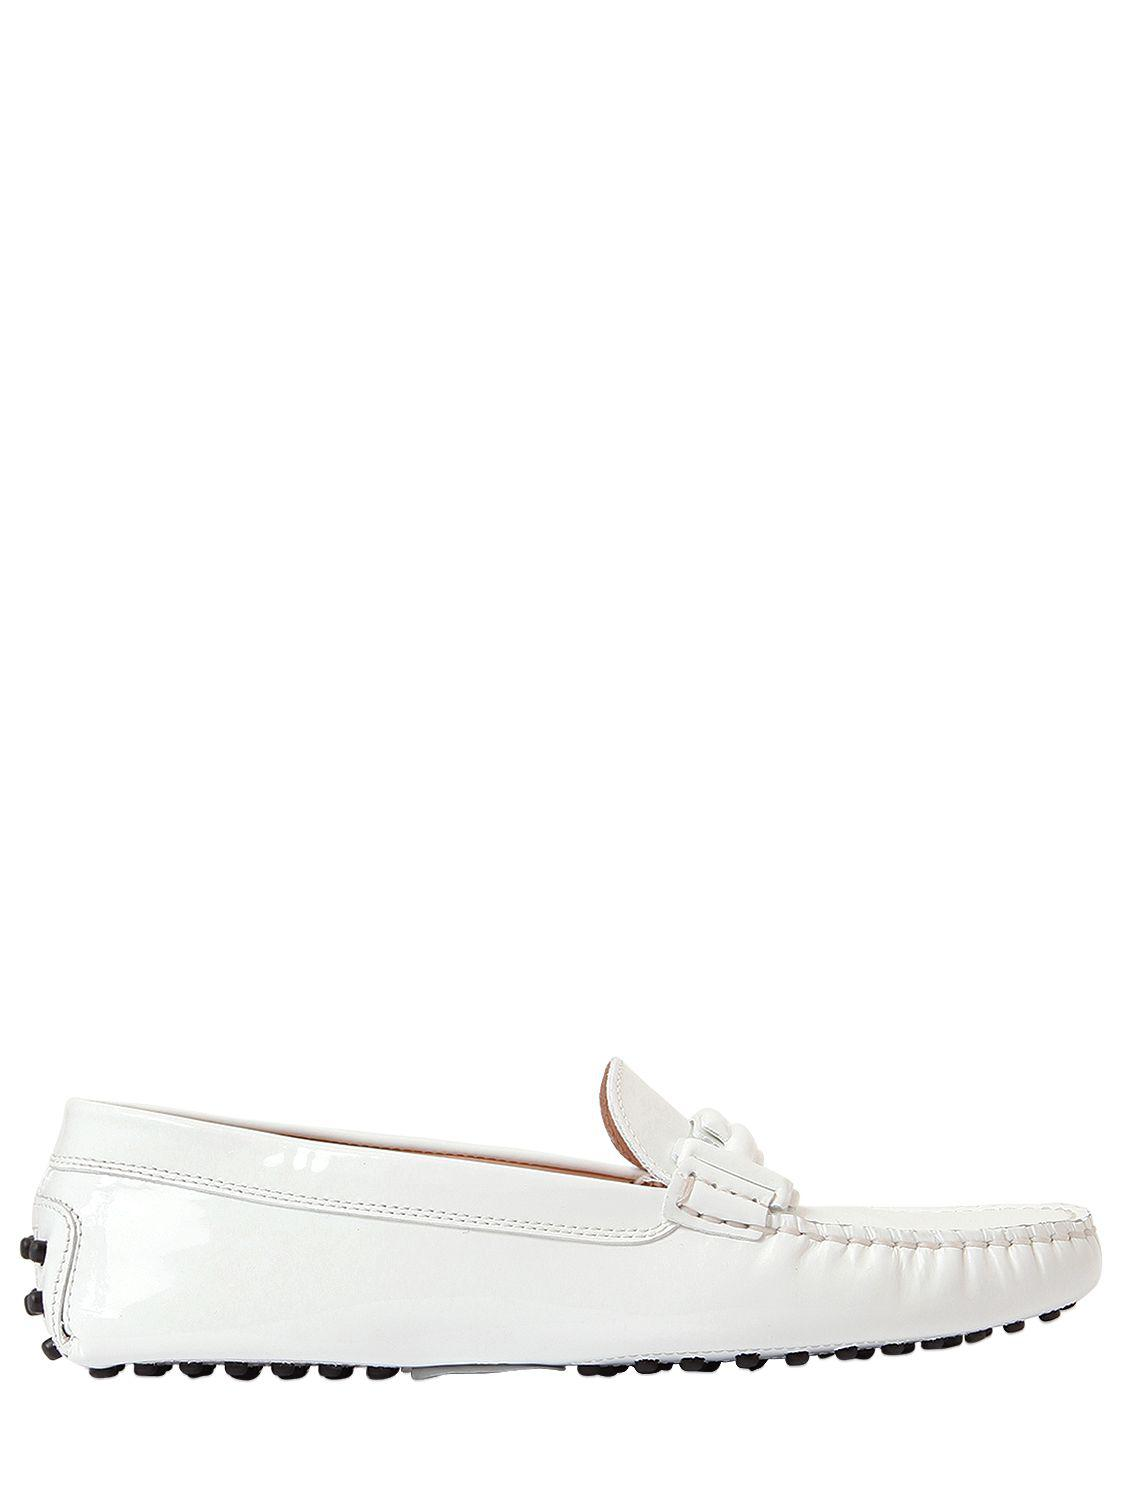 8054a6bc84b04 Tod's Gommino Double T Patent Leather Loafers in White - Lyst